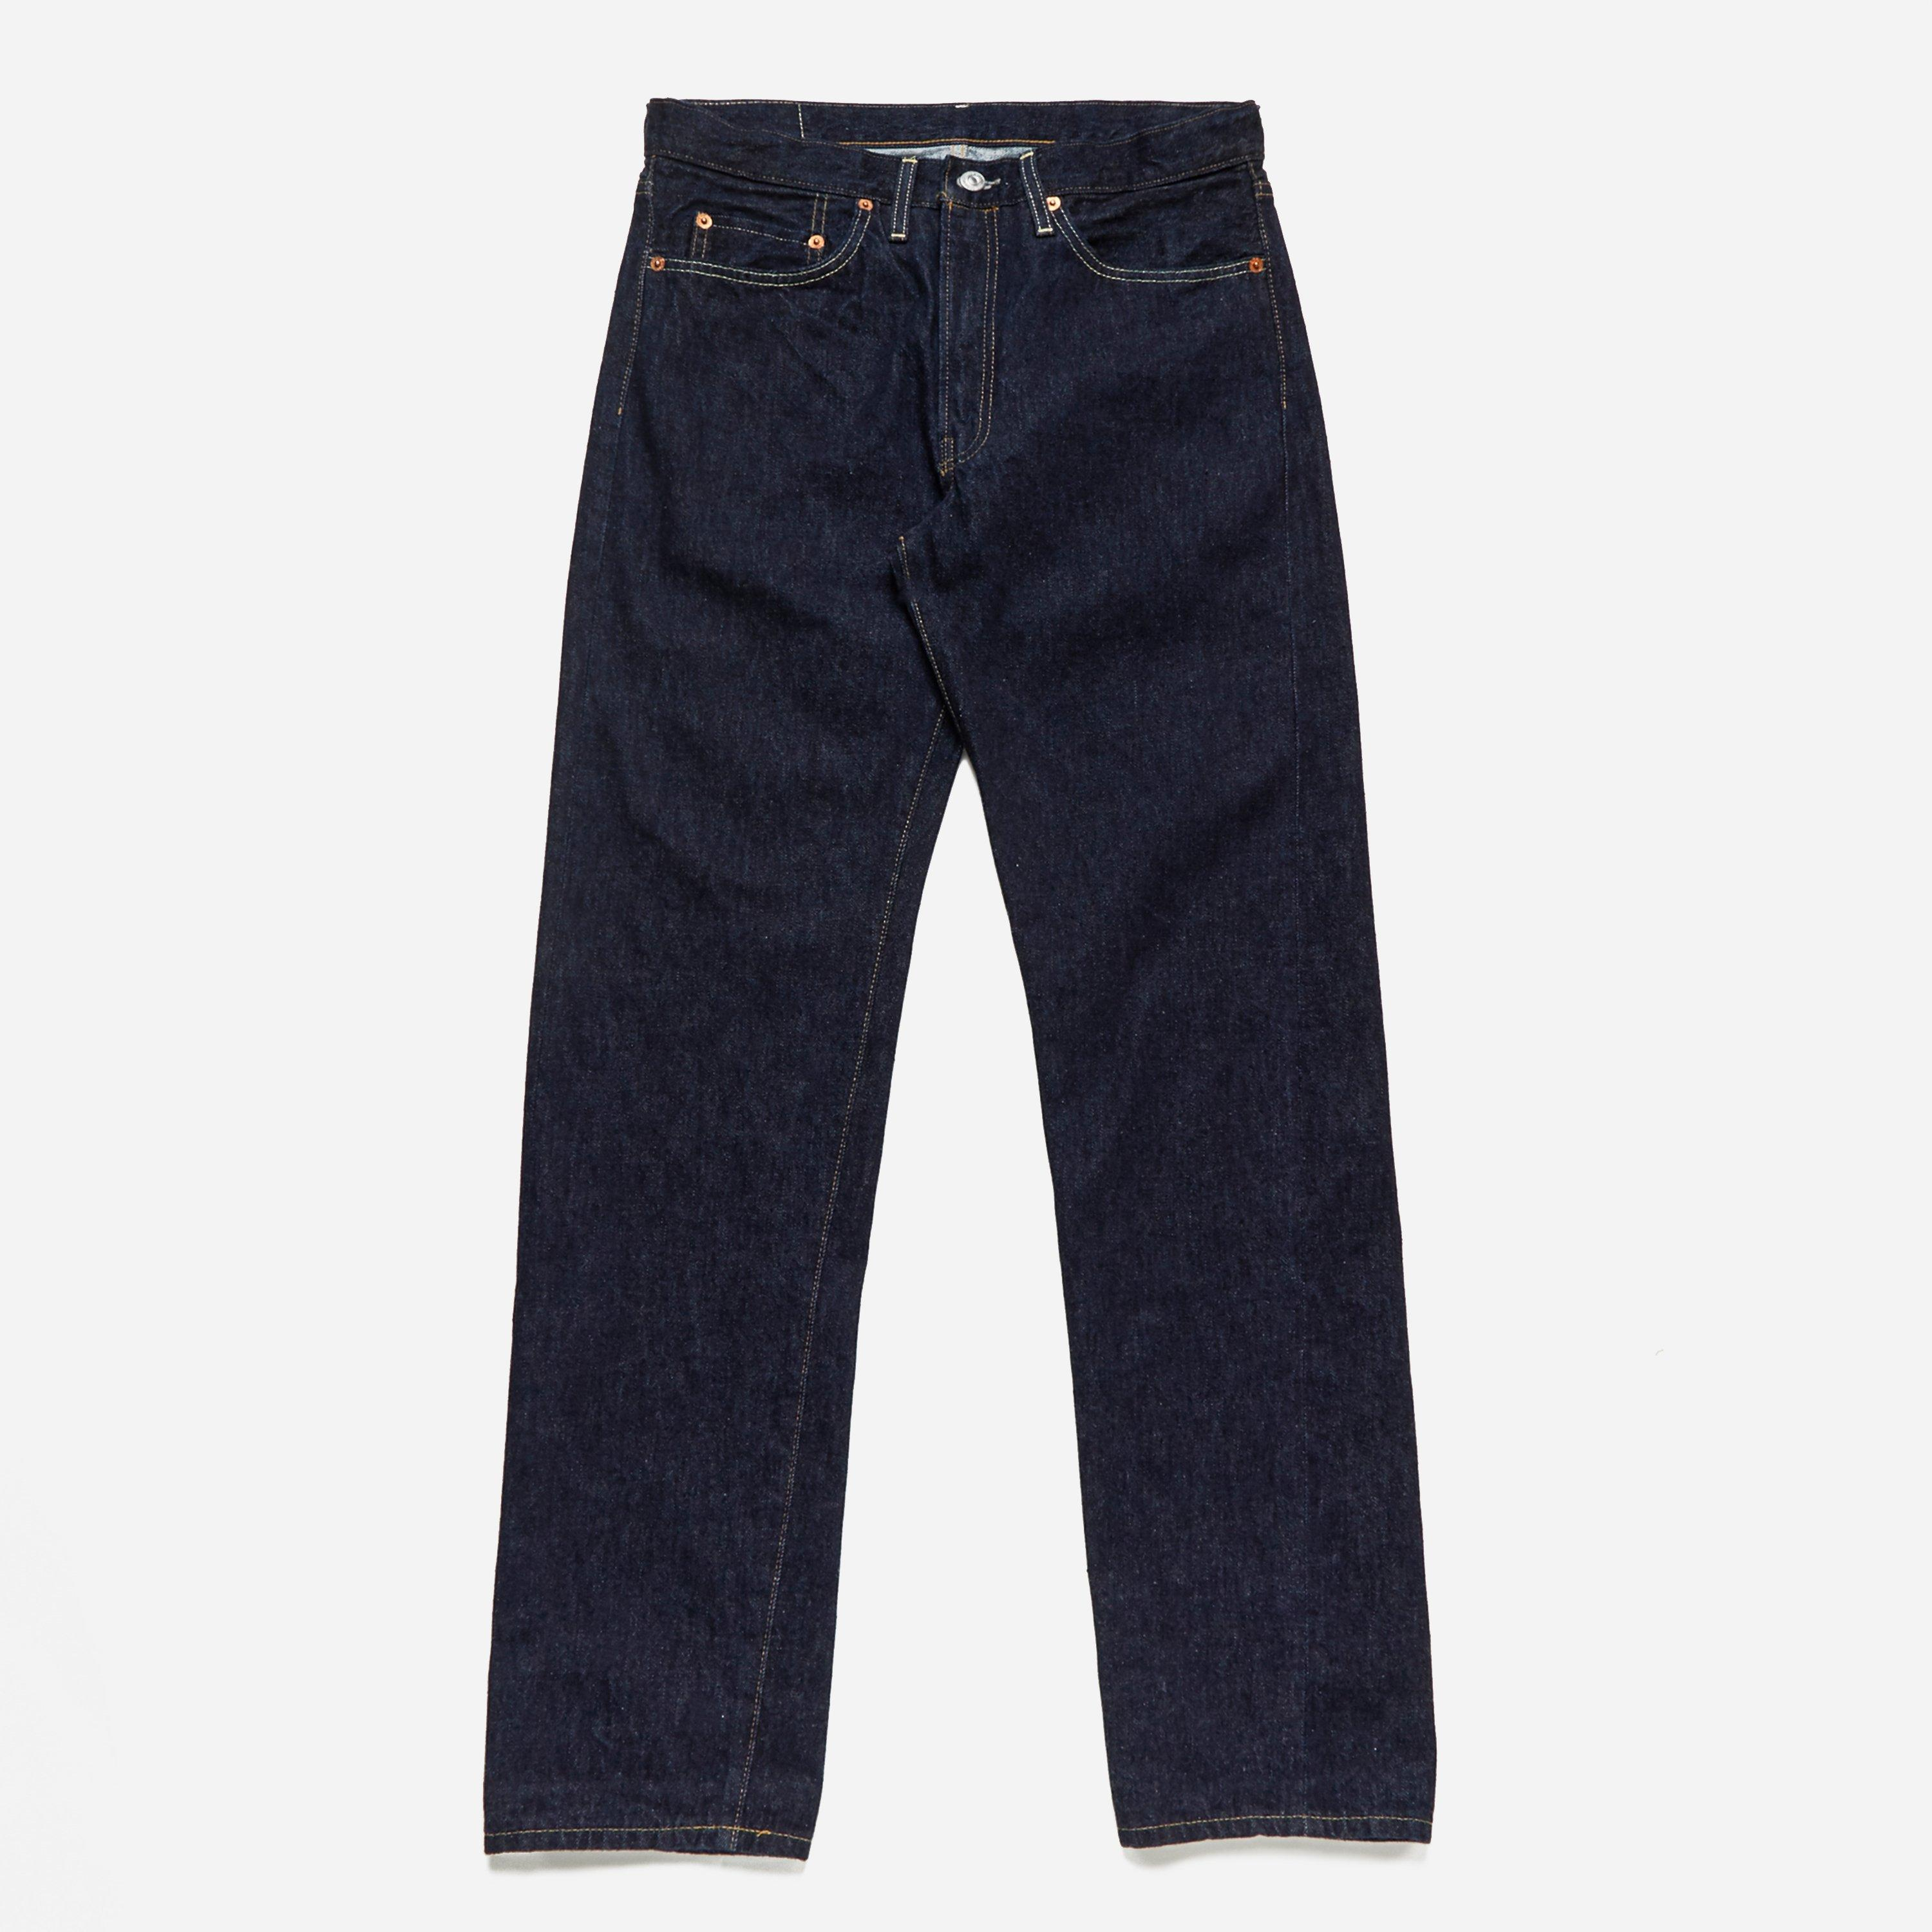 Levis Vintage 1954 501 Jeans New Rinse